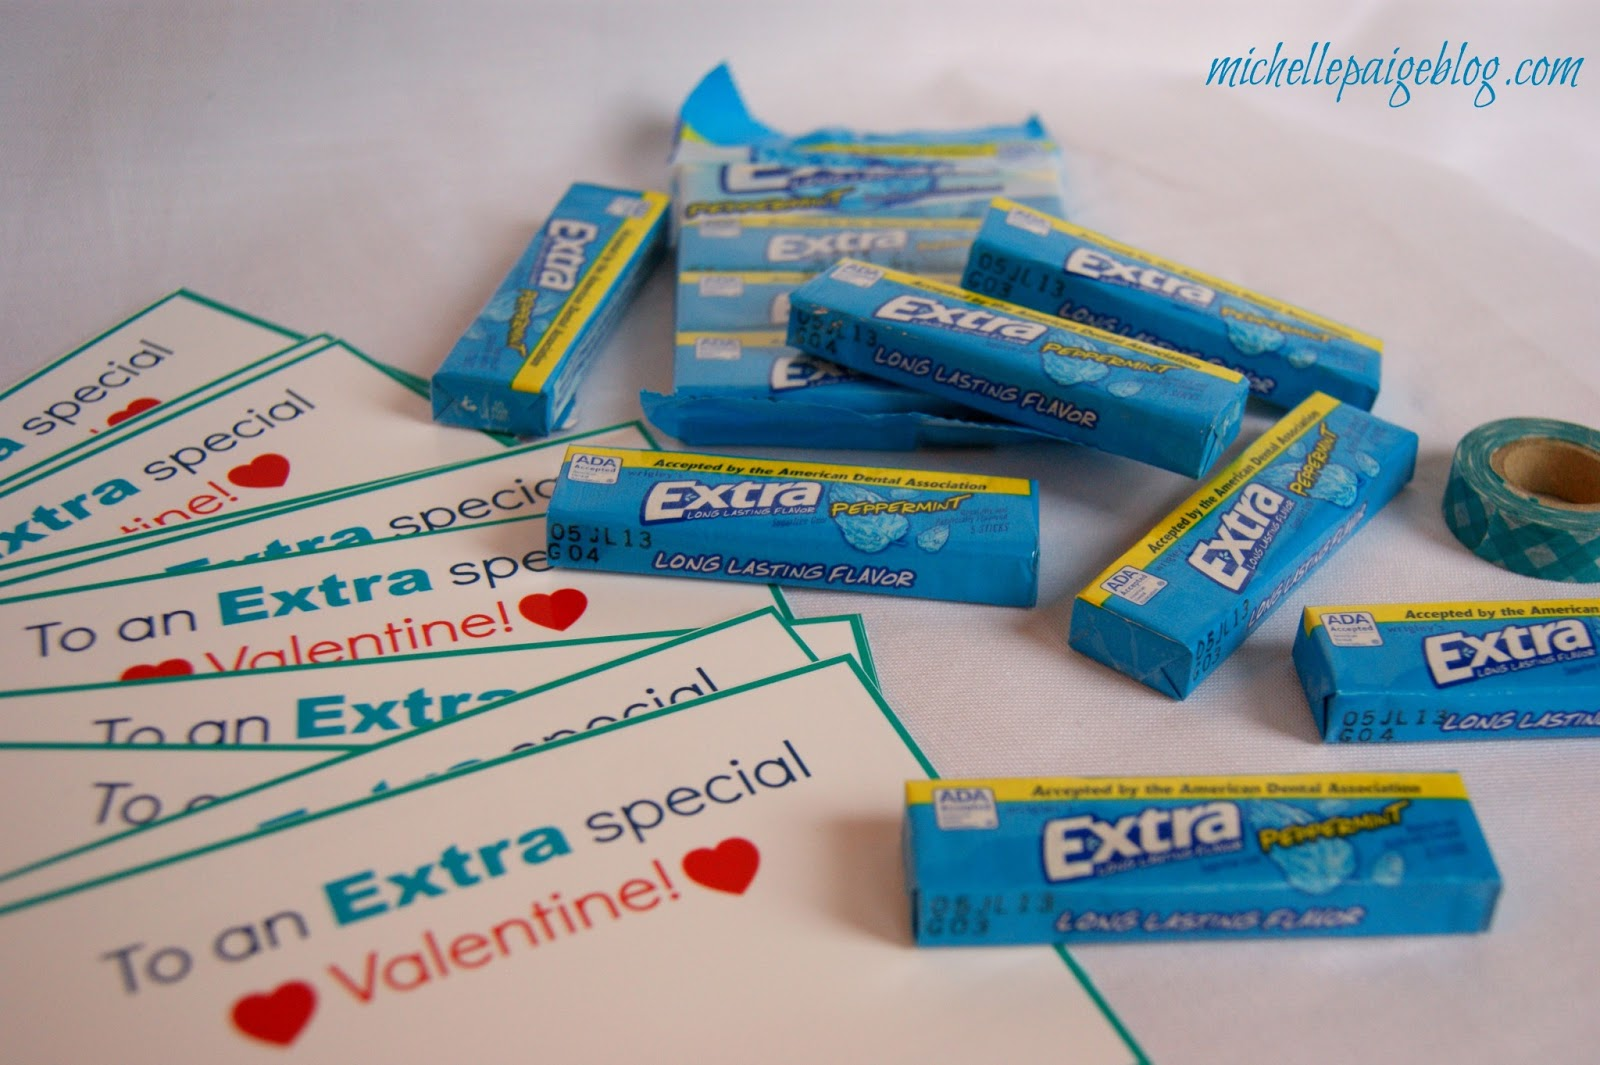 photo about Extra Gum Valentine Printable known as mice paige weblogs: More Exclusive Valentines